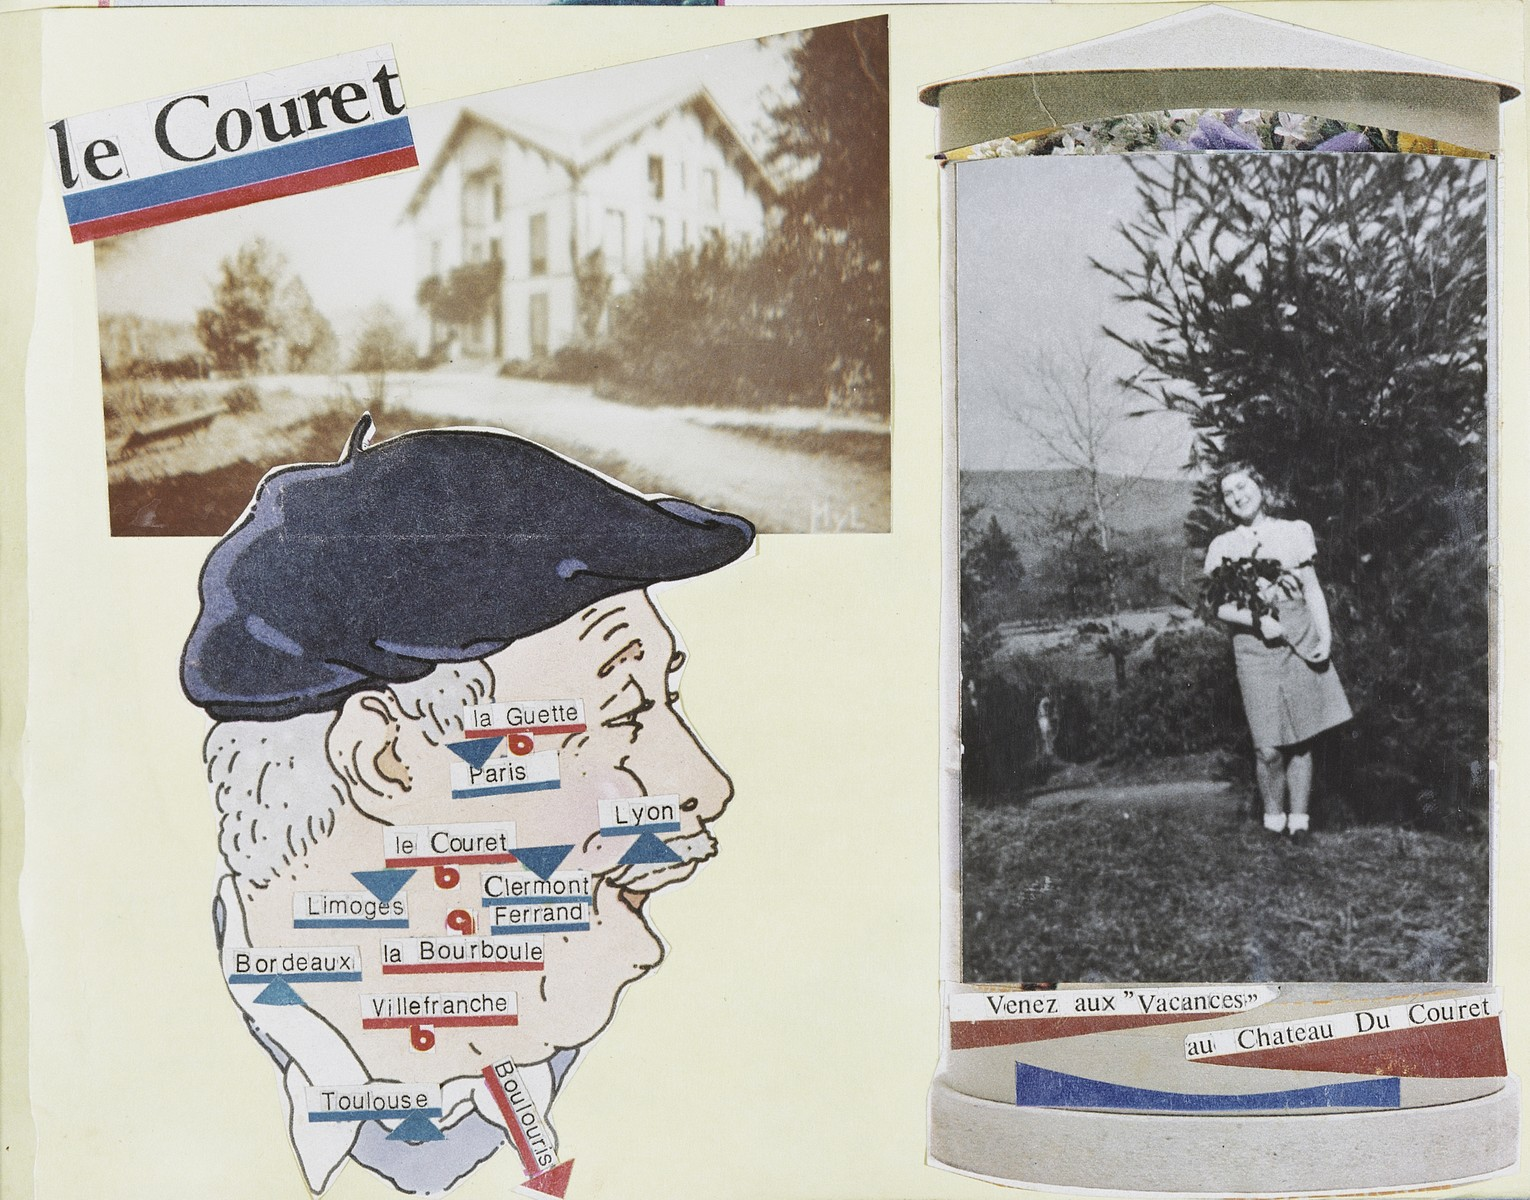 Page of a photo album showing Gisela Edel in the Couret children's home as well as a map in the shape of a Frenchman's face, showing where she hid during the war.